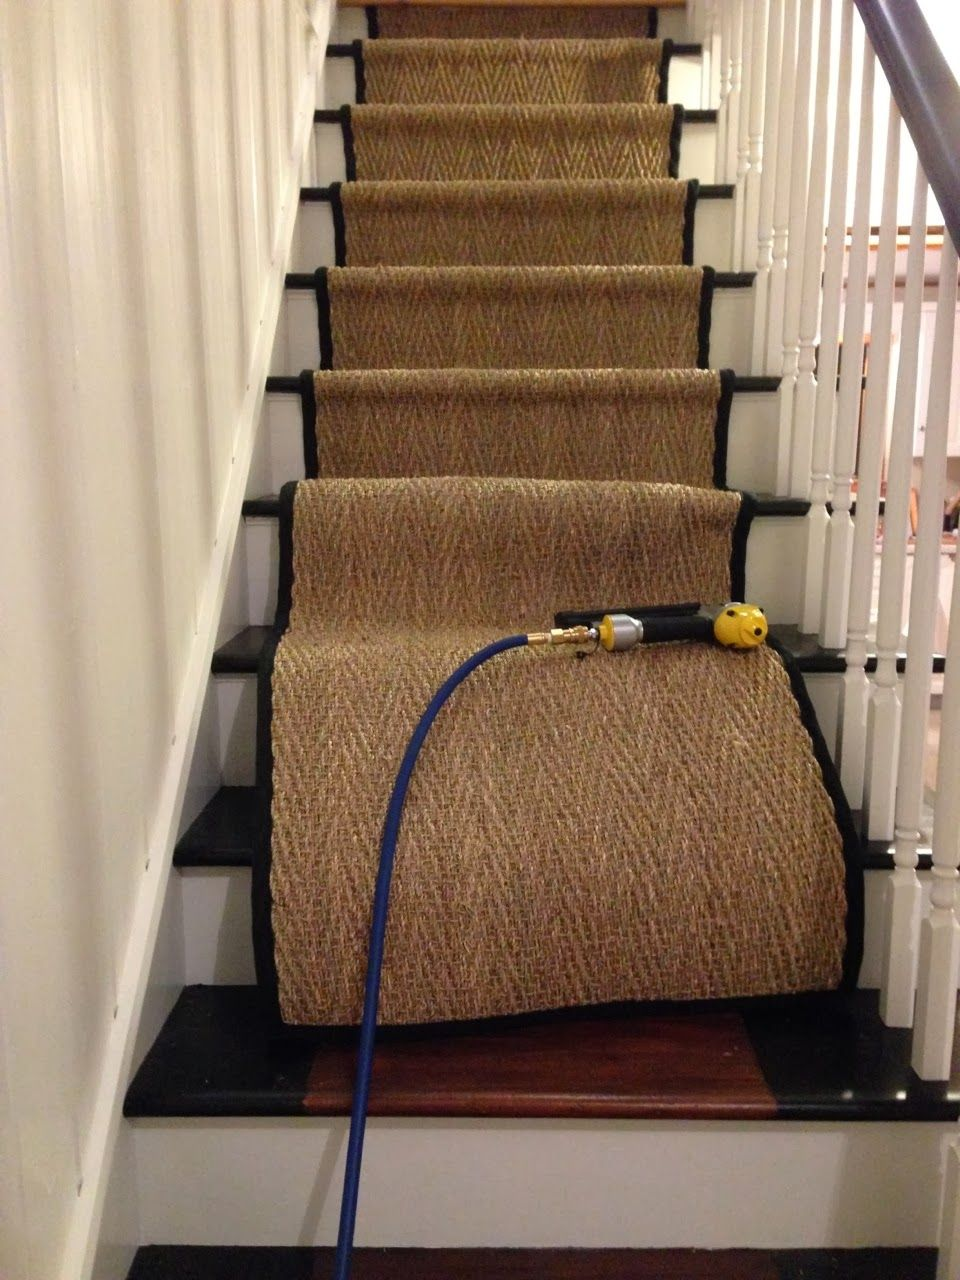 Installing Seagrass Safavieh Stair Runner   Google Search What I Like About  This Is The Black Trimmed Carpet, And Stairs, And Handrail.